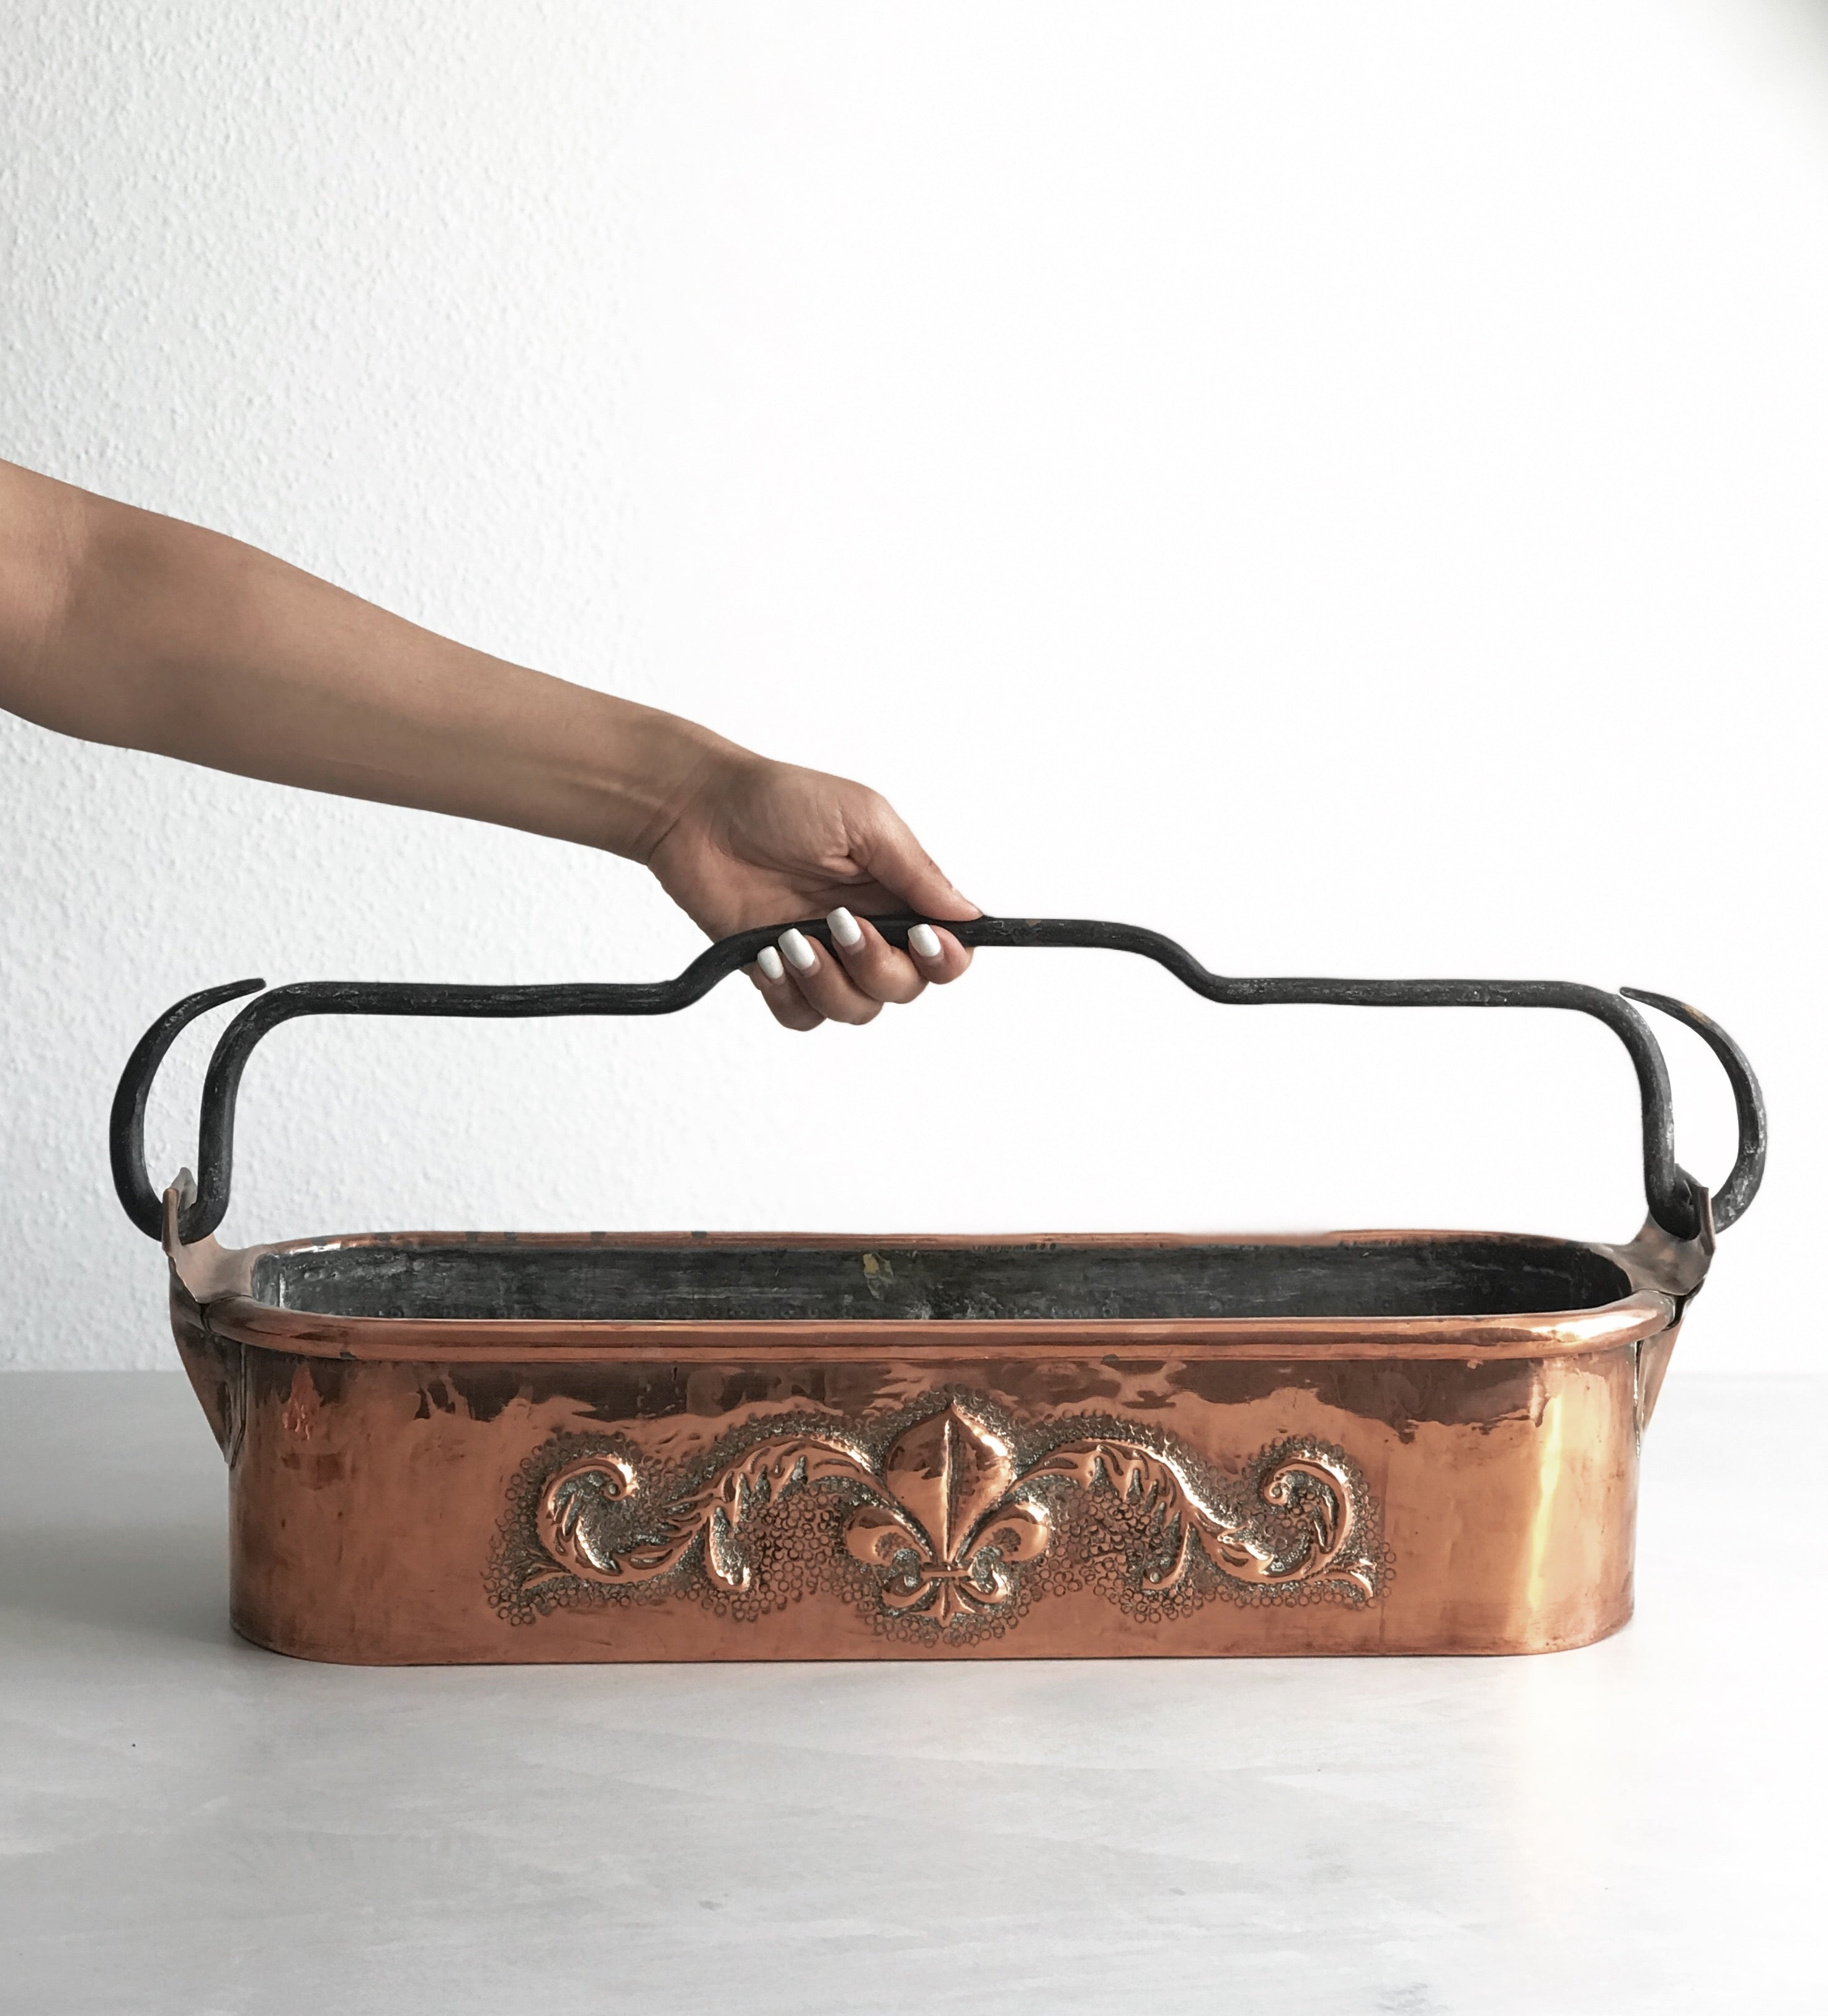 French 19th Century Copper Fish Poacher Pan Kettle/ Poissonnière